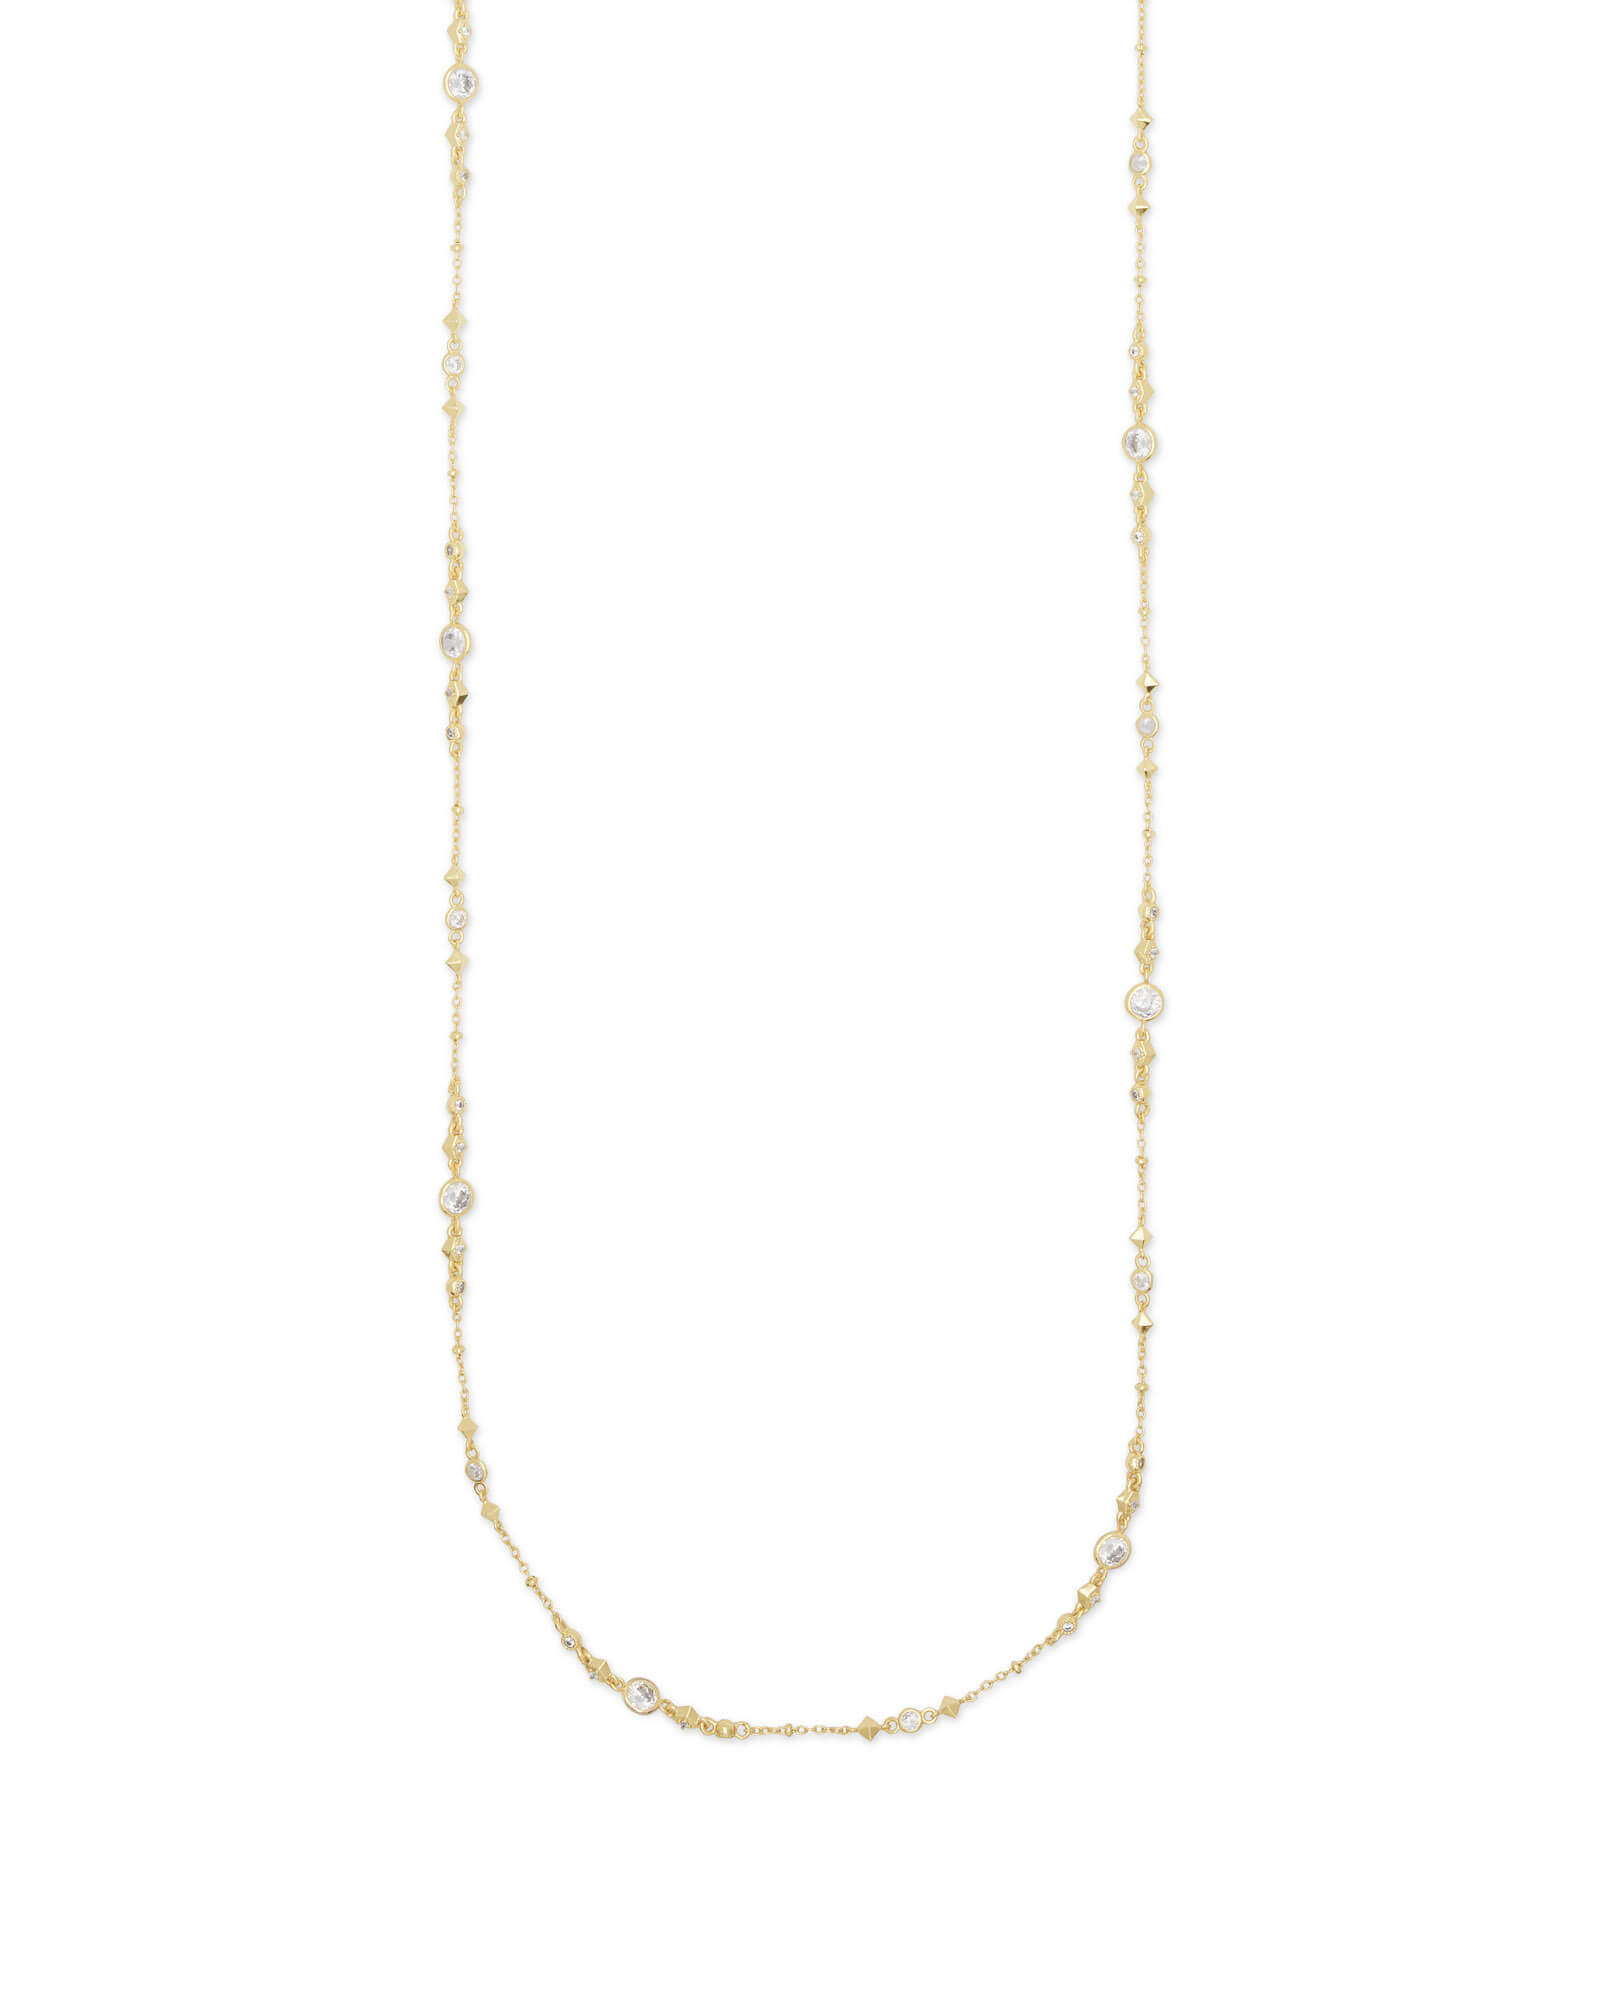 Wyndham Long Necklace in Gold